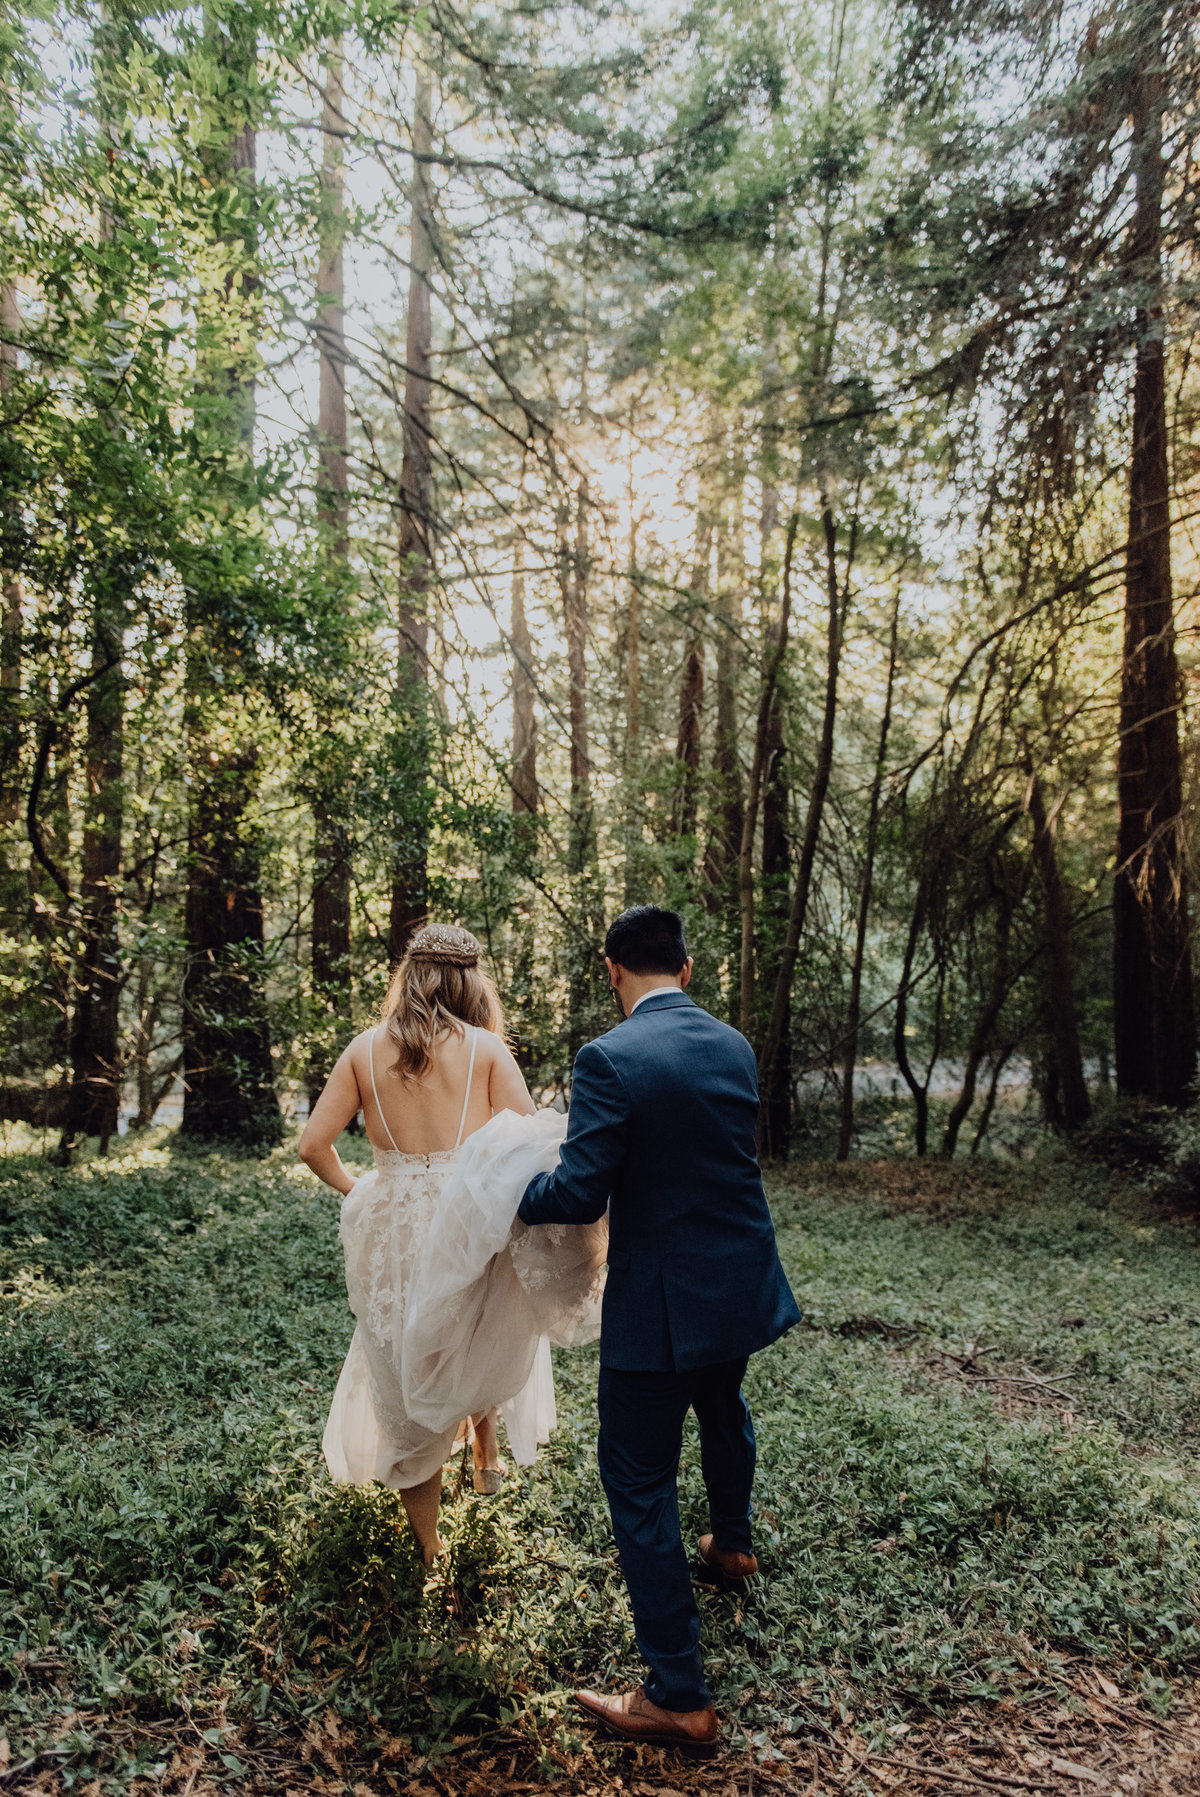 Bride and Groom walk through the forest as the groom holds the brides dress up for her